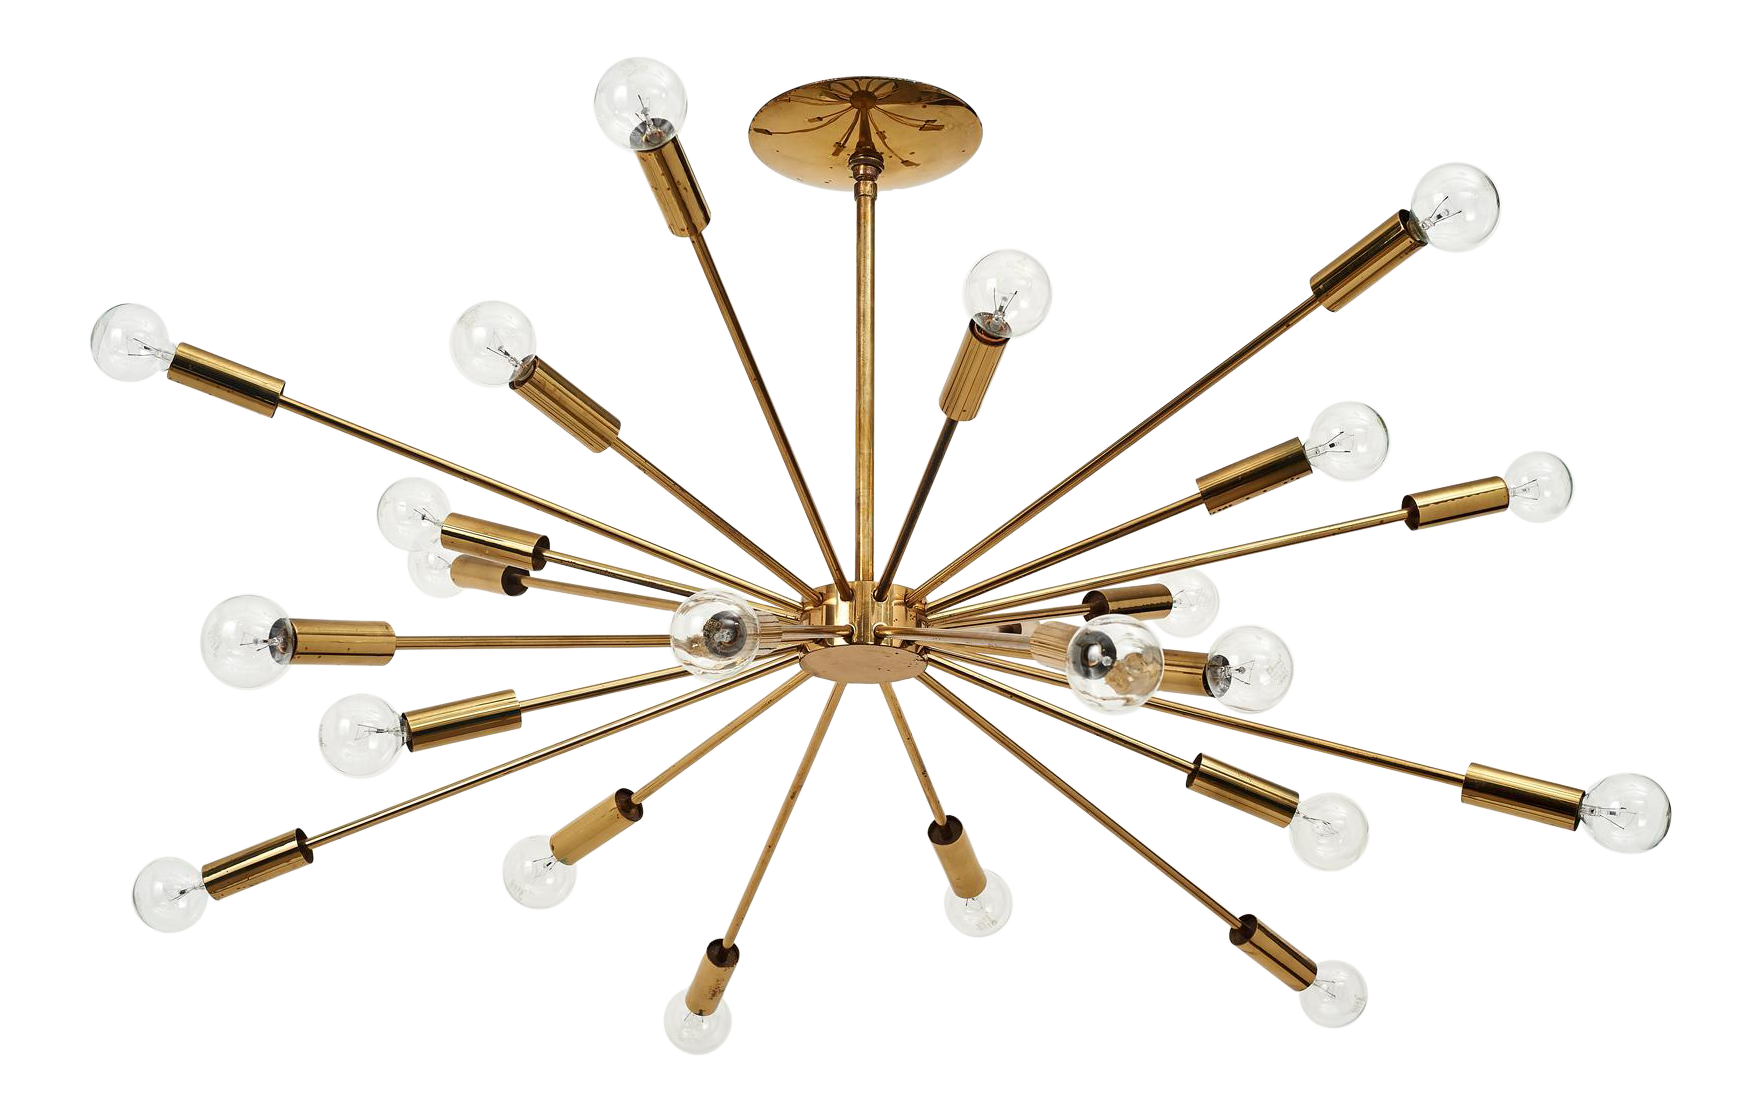 Superb Gino Sarfatti 24 Light Brass Sputnik Chandelier Model 4081 Ca 1950 Decaso